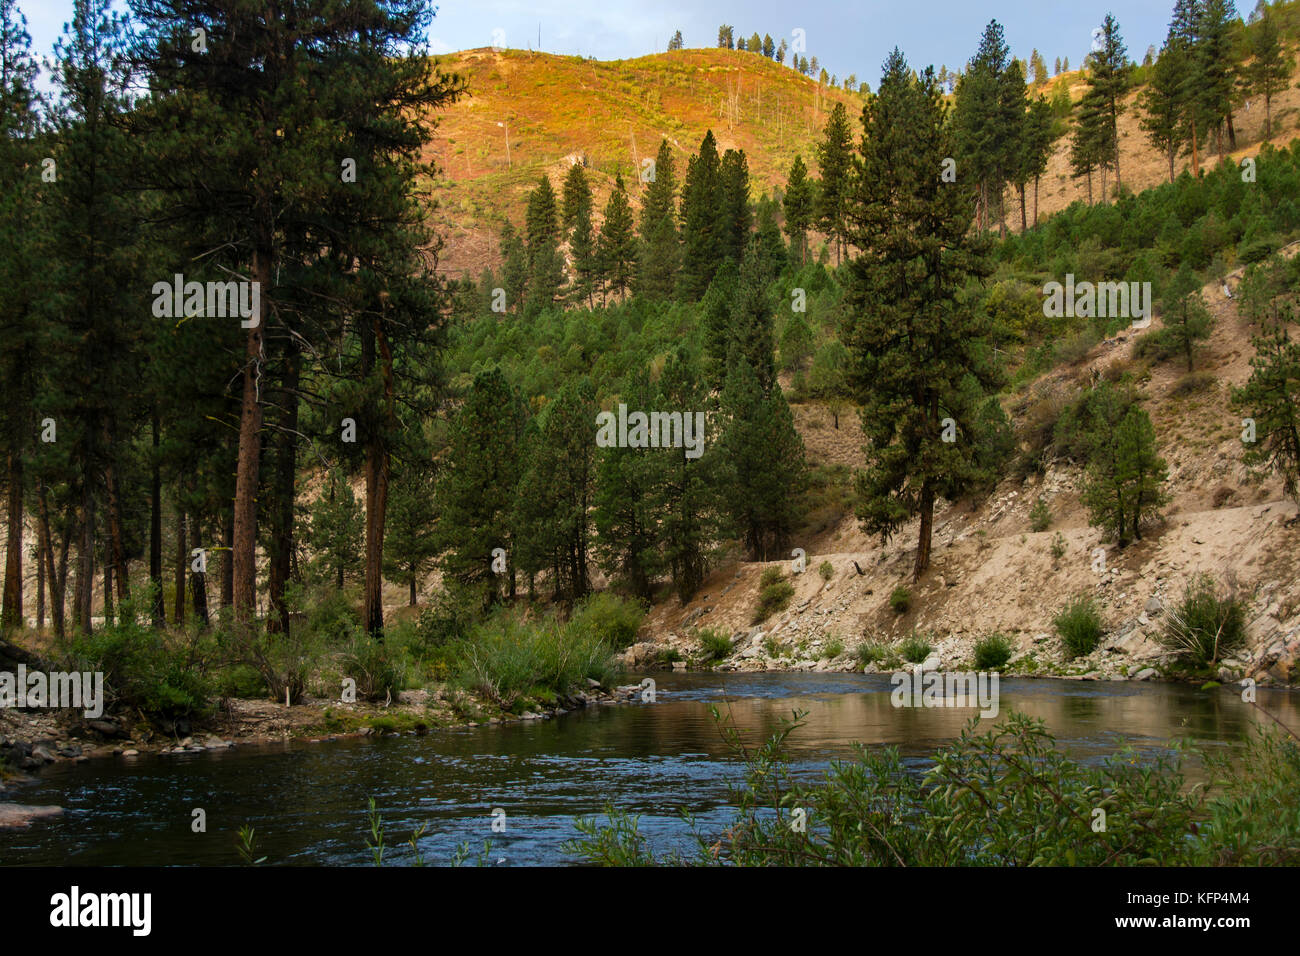 Scenic view of North Fork of the Boise River in Idaho, USA - Stock Image